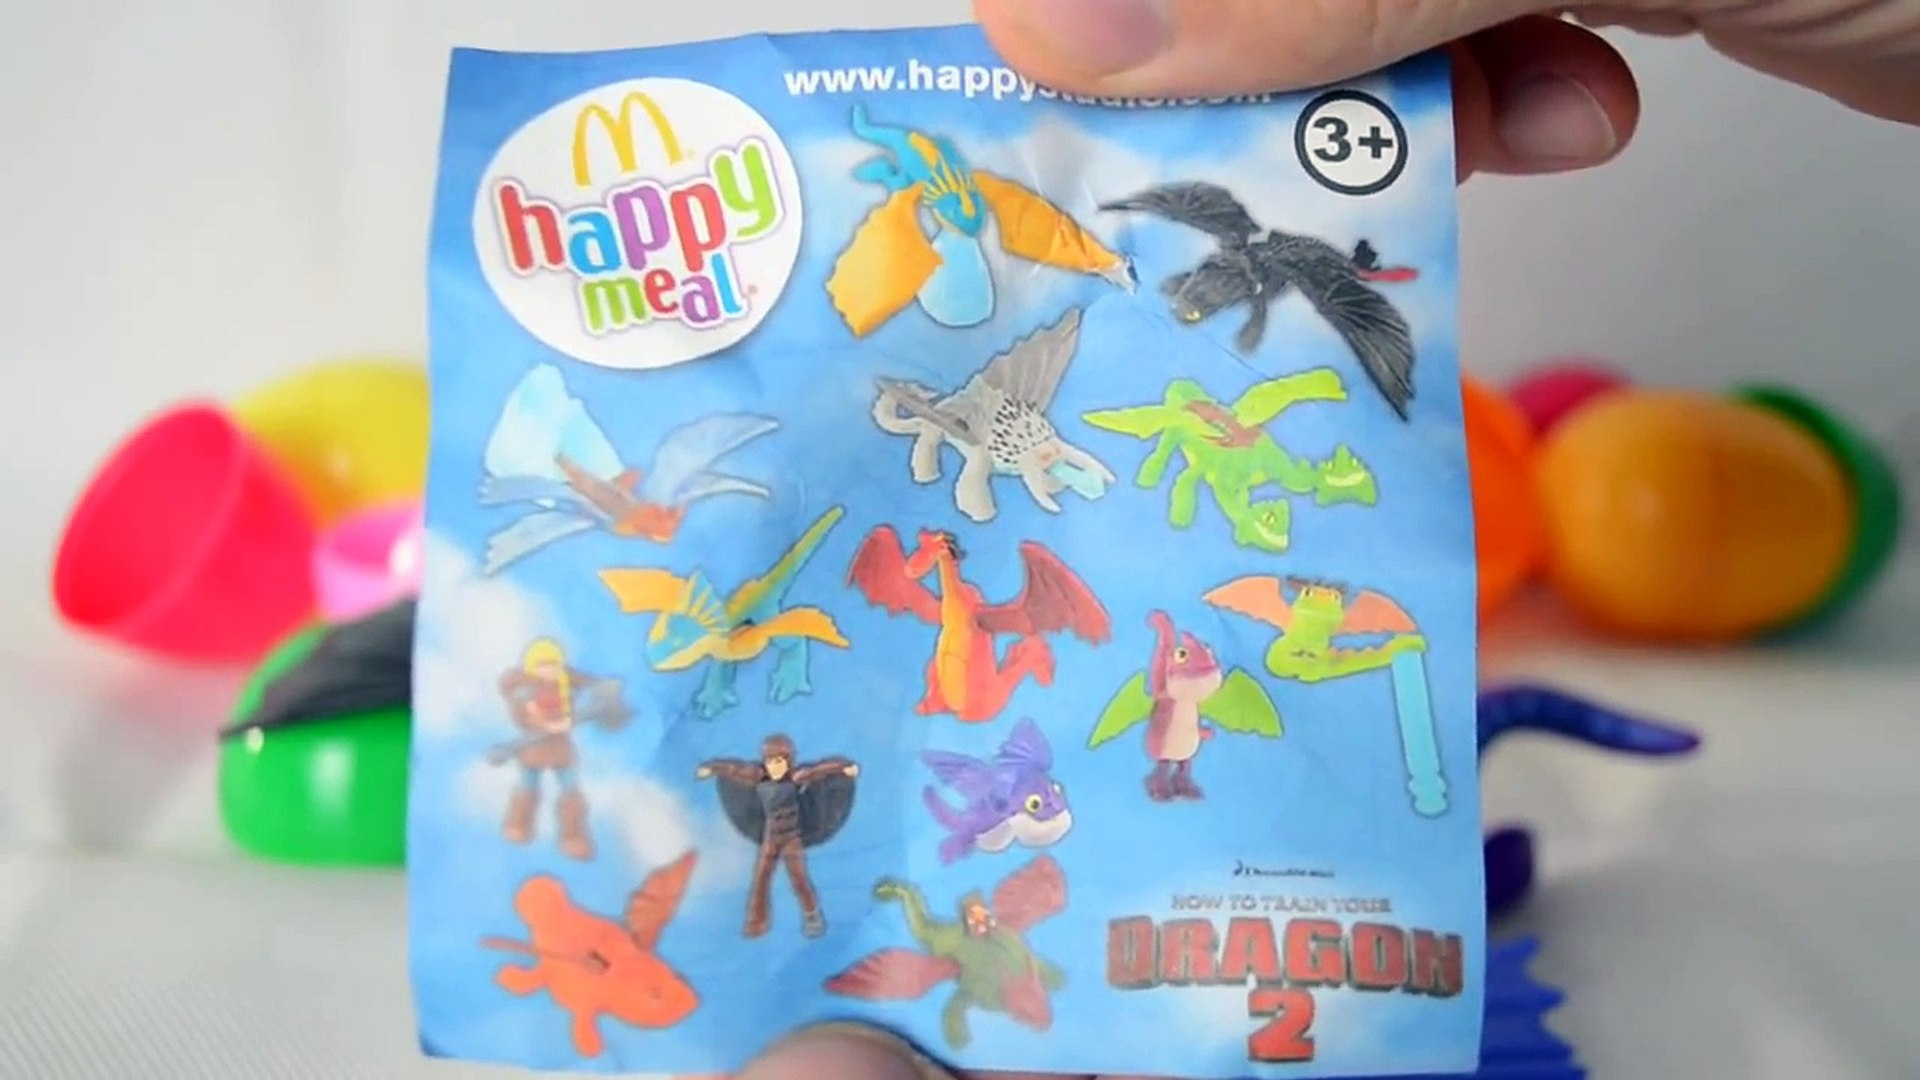 Mcdonalds Happy Meal Toys How To Train Your Dragon 2 Toys Mcdonalds Set Video Dailymotion